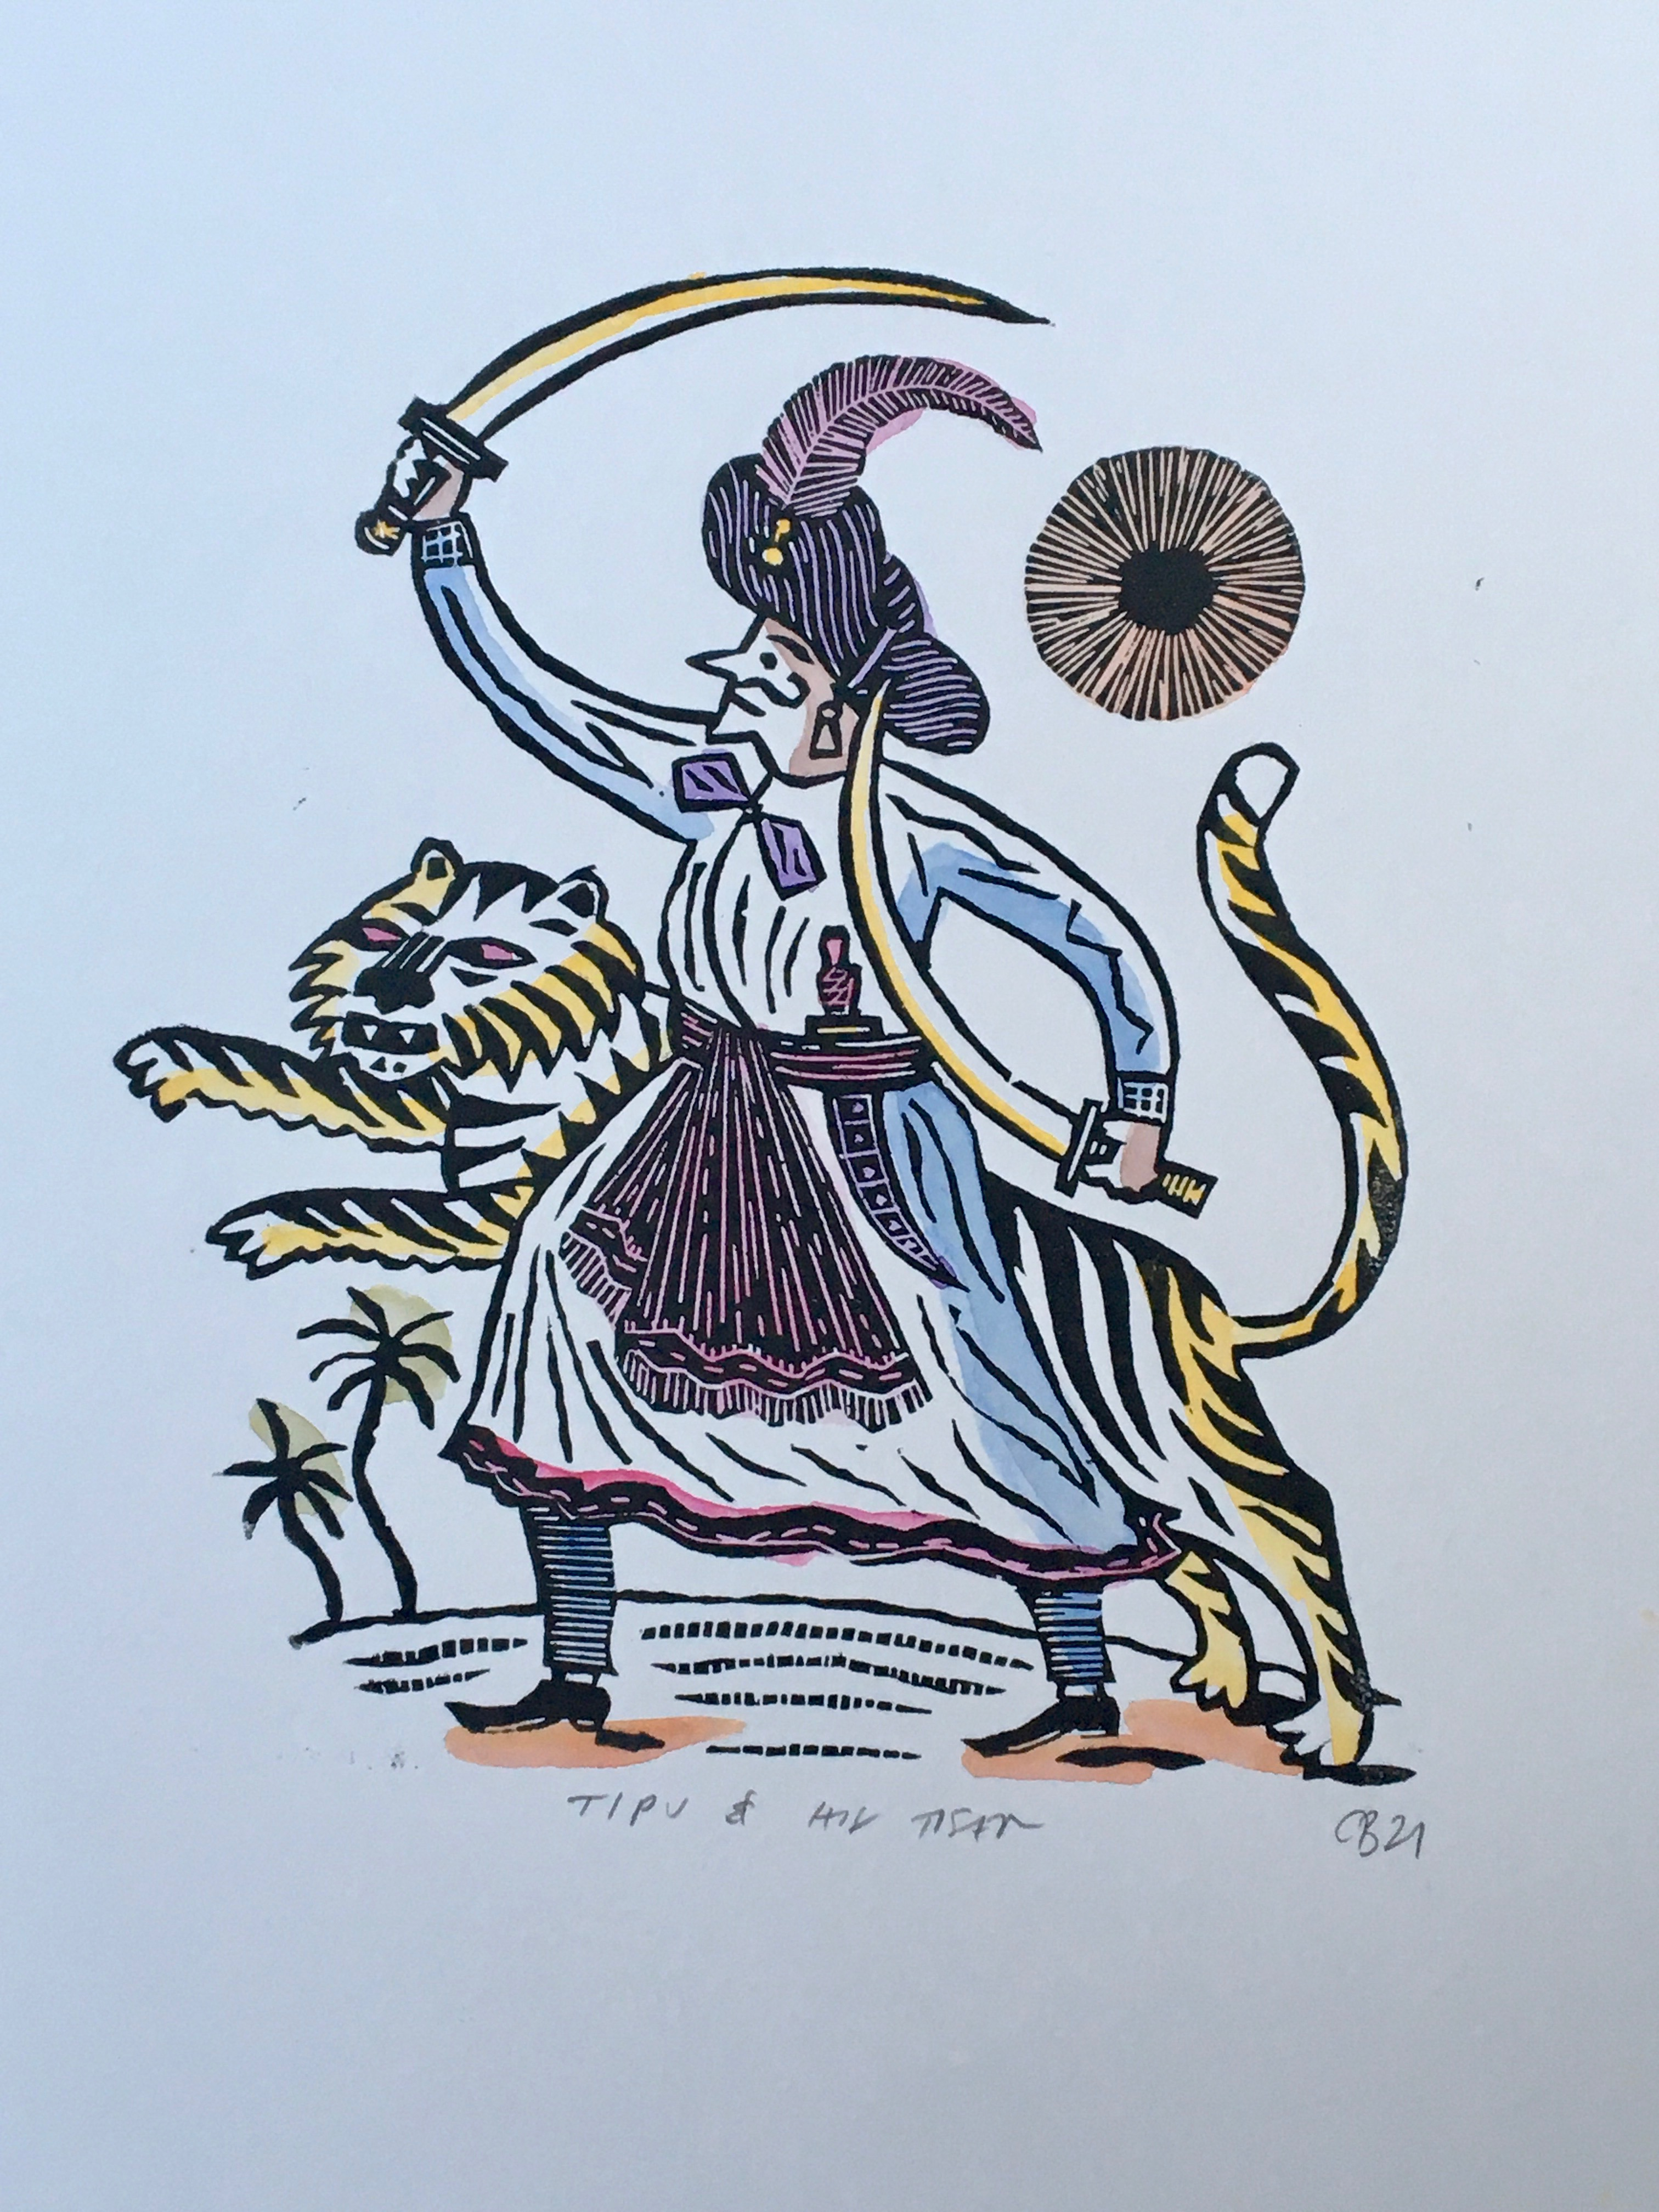 Tipu and the Tiger